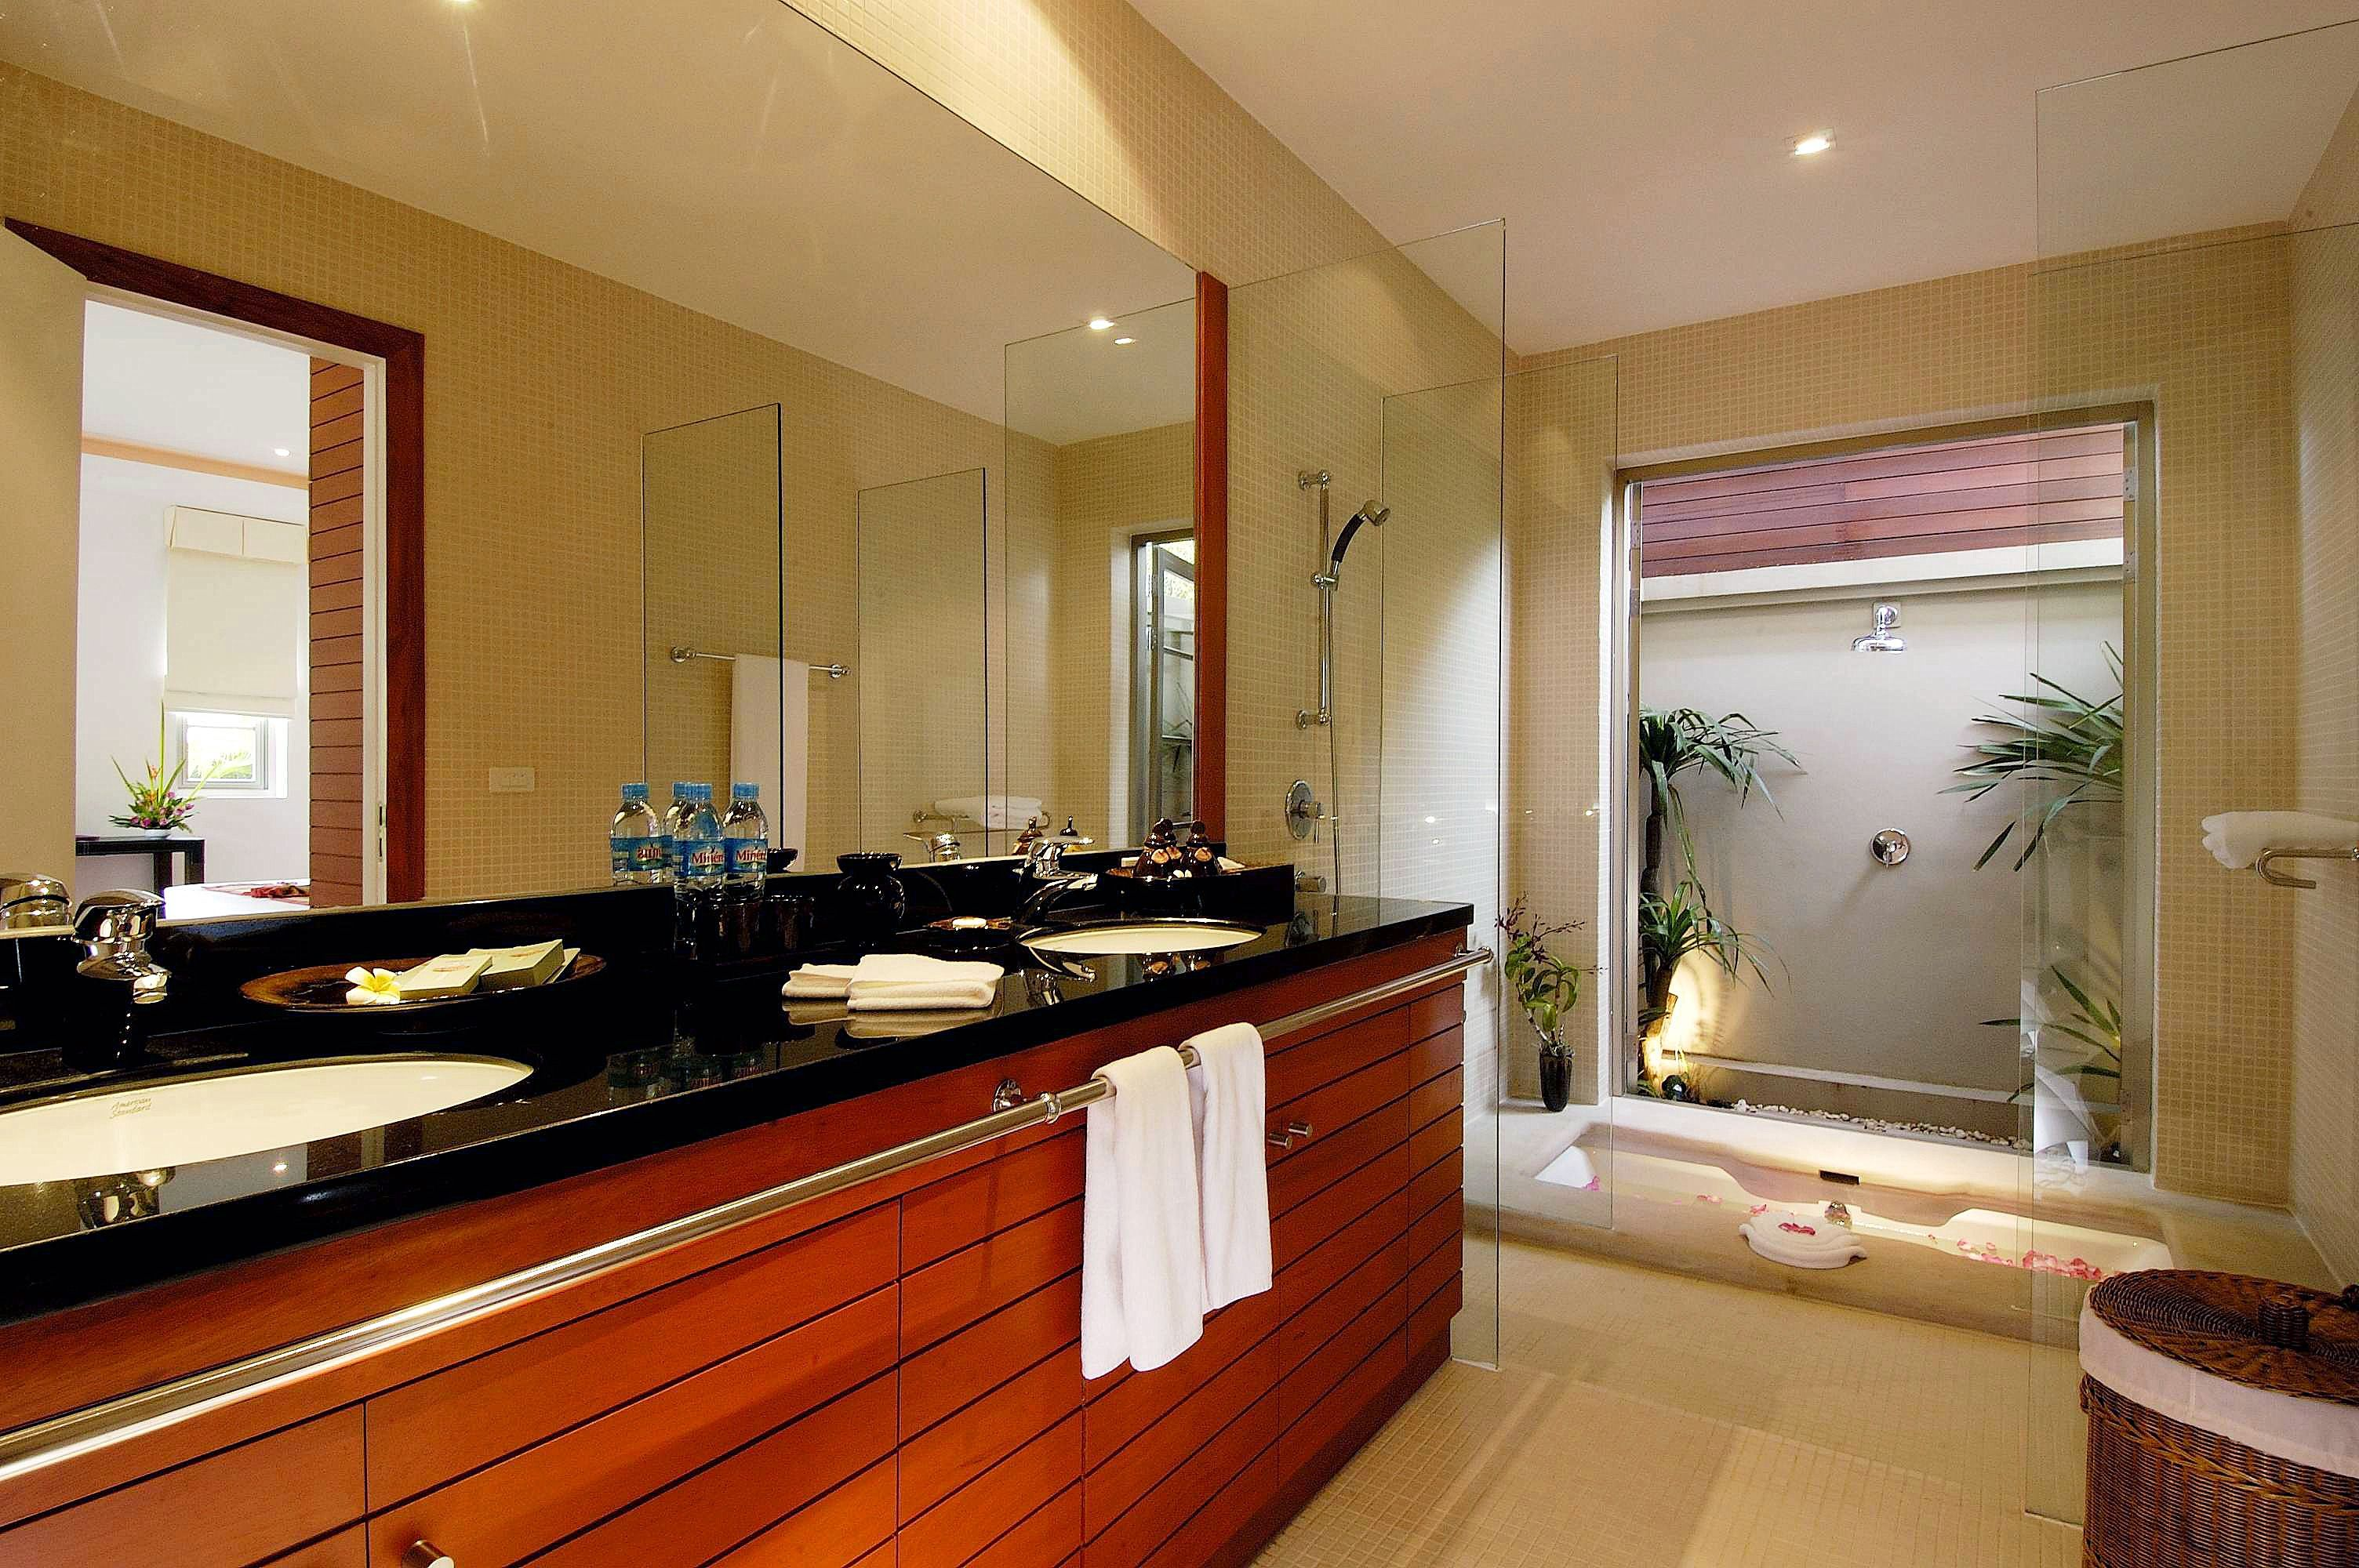 photos of remodeled bathrooms%0A DIY Bathroom Remodel Planning